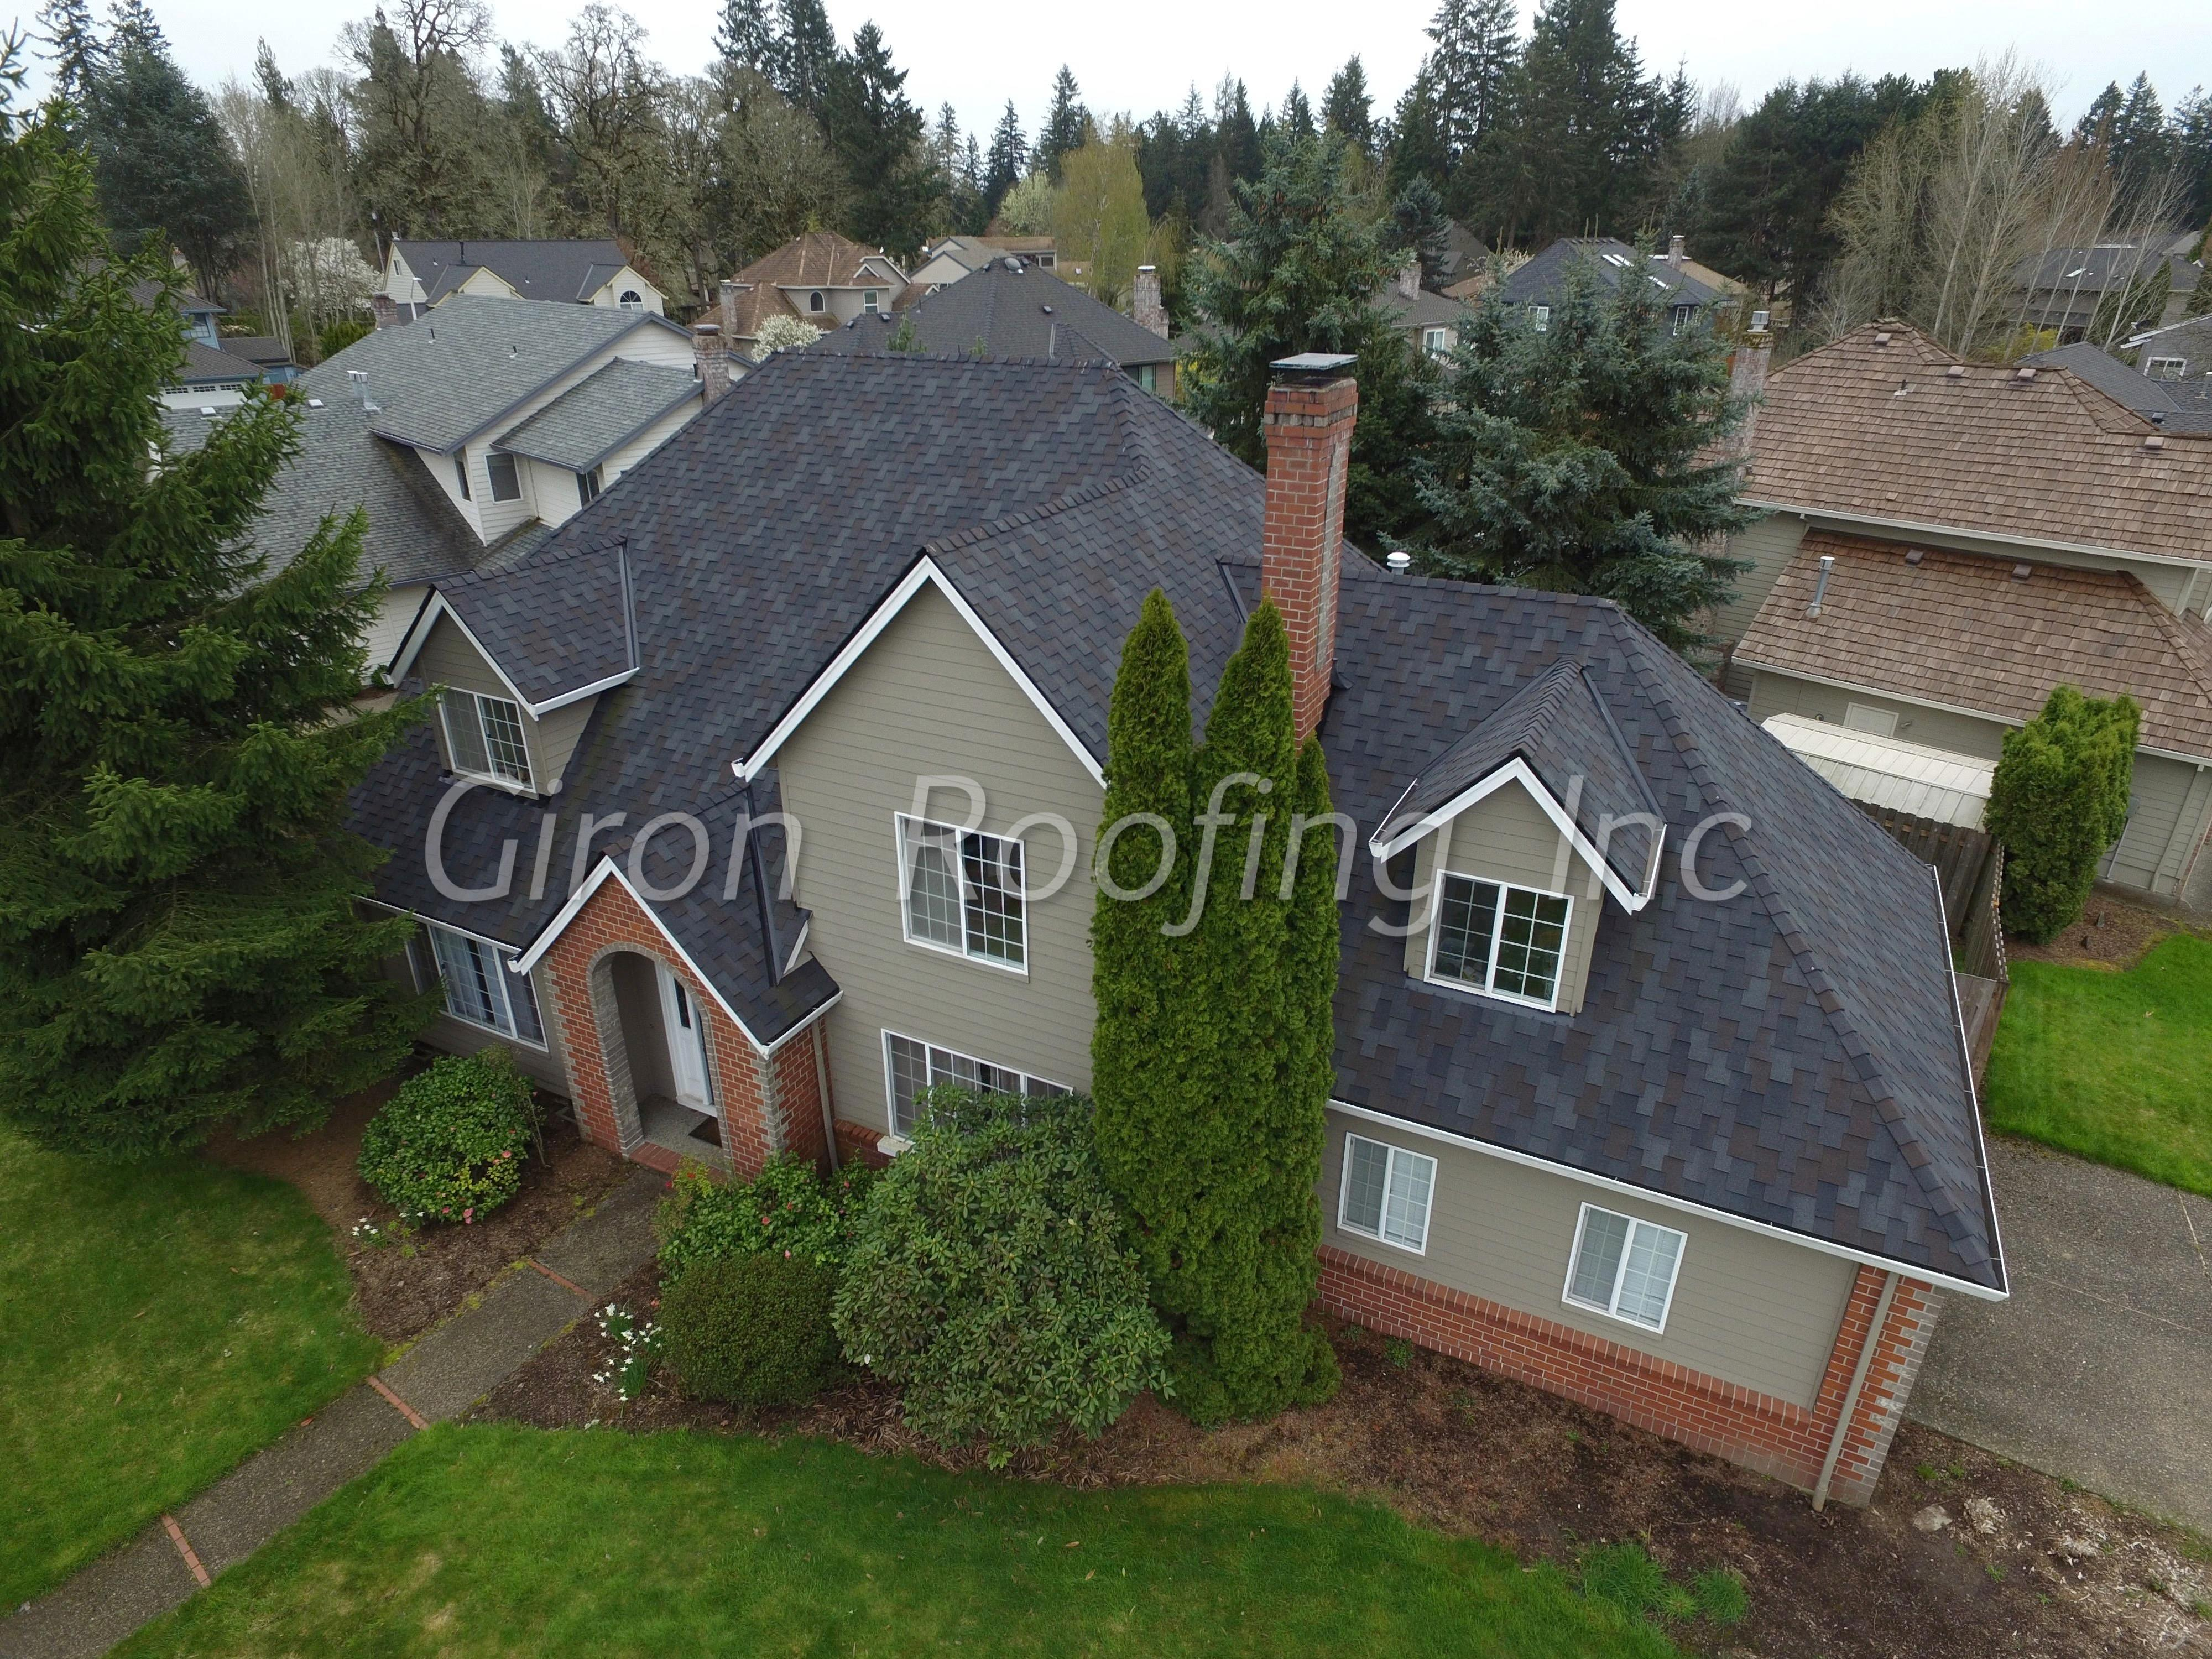 Giron Roofing Inc 16110 Se 106th Ave Clackamas Or Roofing Mapquest